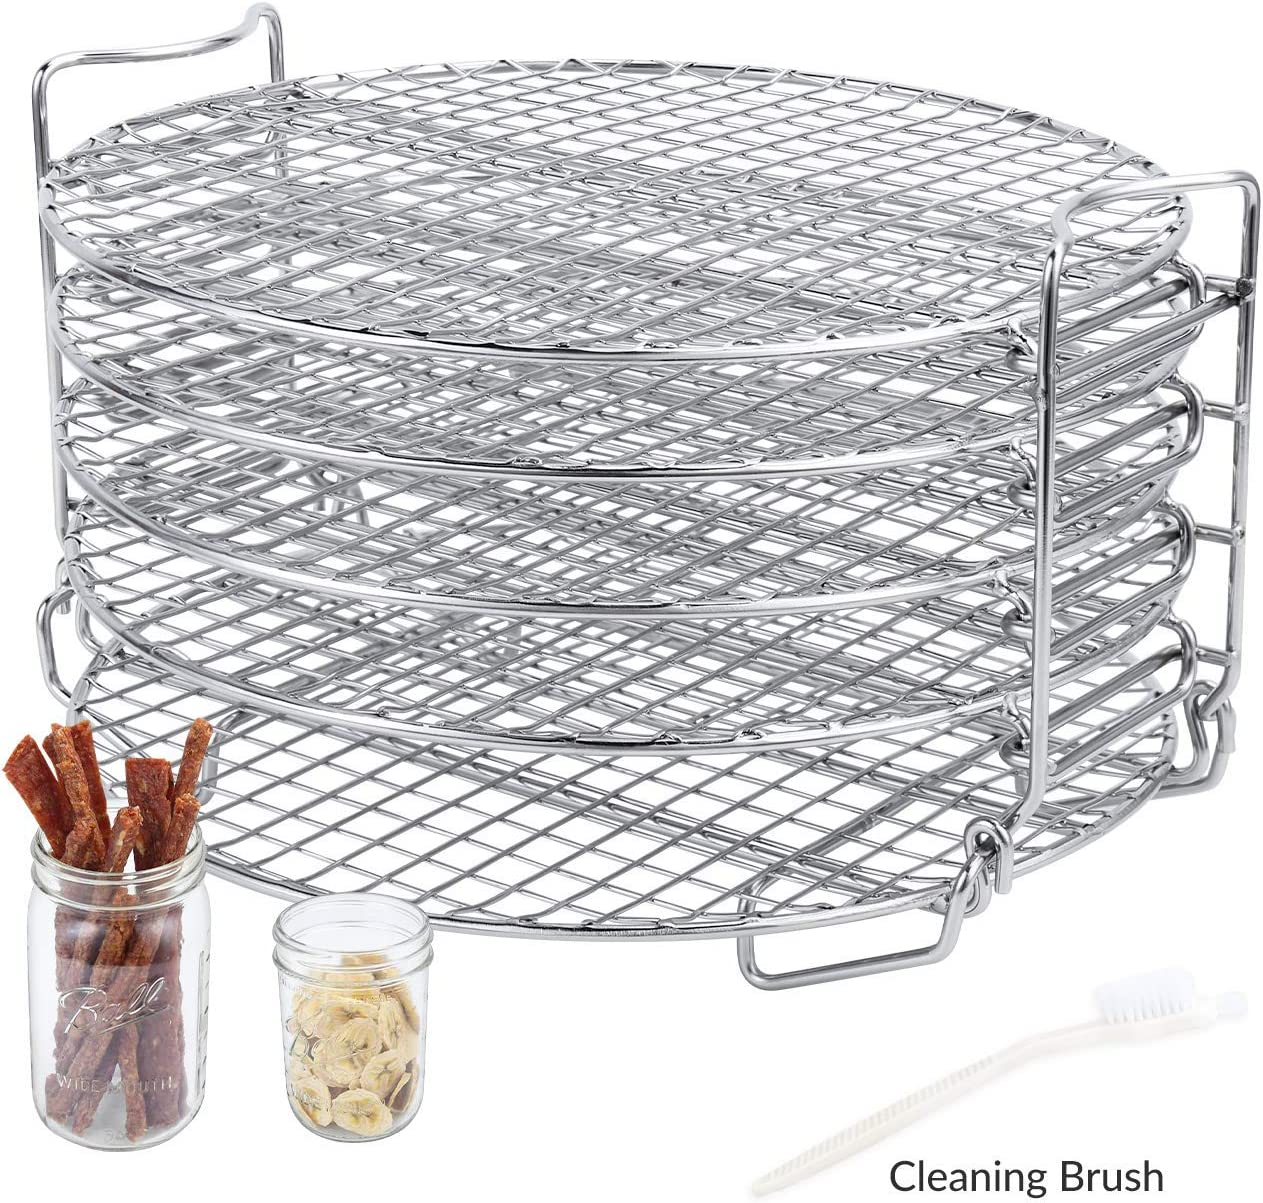 Dehydrator Stand for Ninja Foodi Accessories, Dehydrator Rack with Five Stackable Layers Food Grade 304 Stainless Steel Compatible with Ninja Foodi Pressure Cooker Air Fryer 6.5 qt & 8 qt